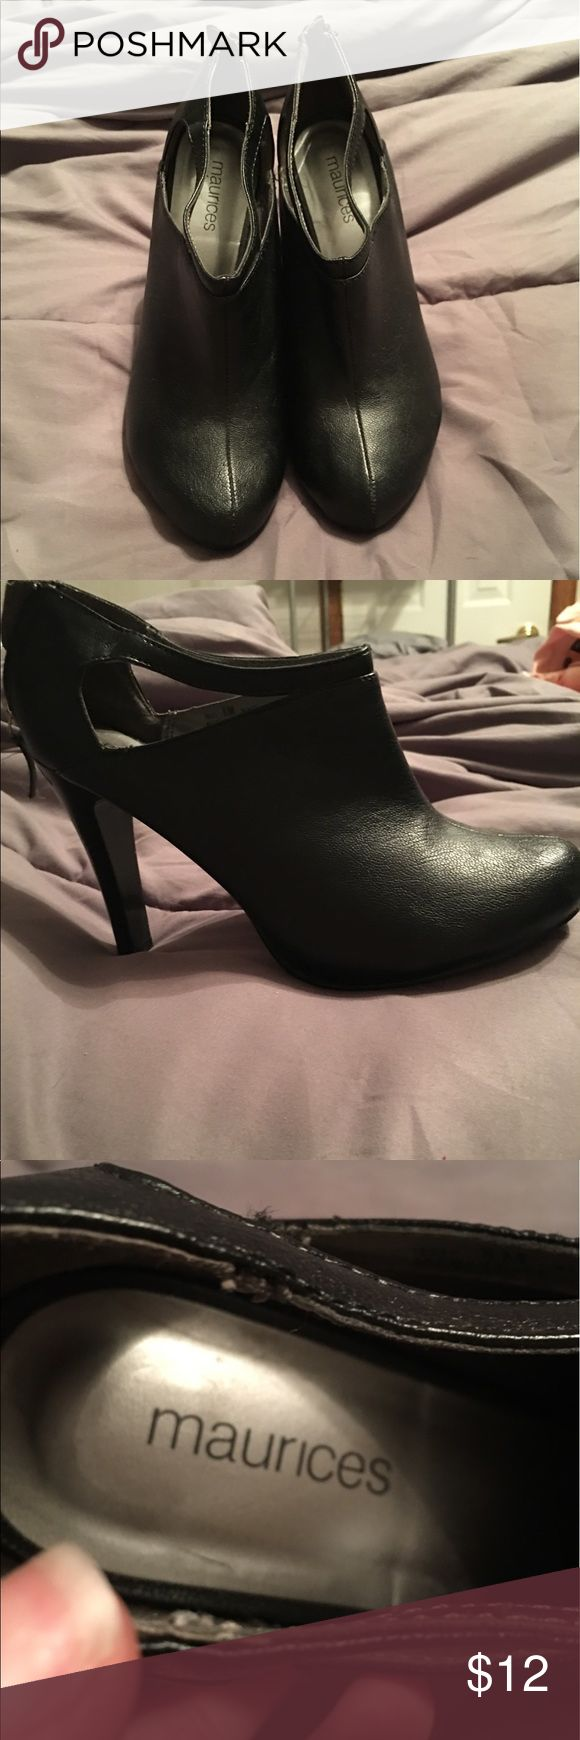 Black zip up cover toed heels Super cute heels to wear with anything. A little worn but still have lots of life left in them. Comfy too. 2-3 inch heels Maurices Shoes Heels